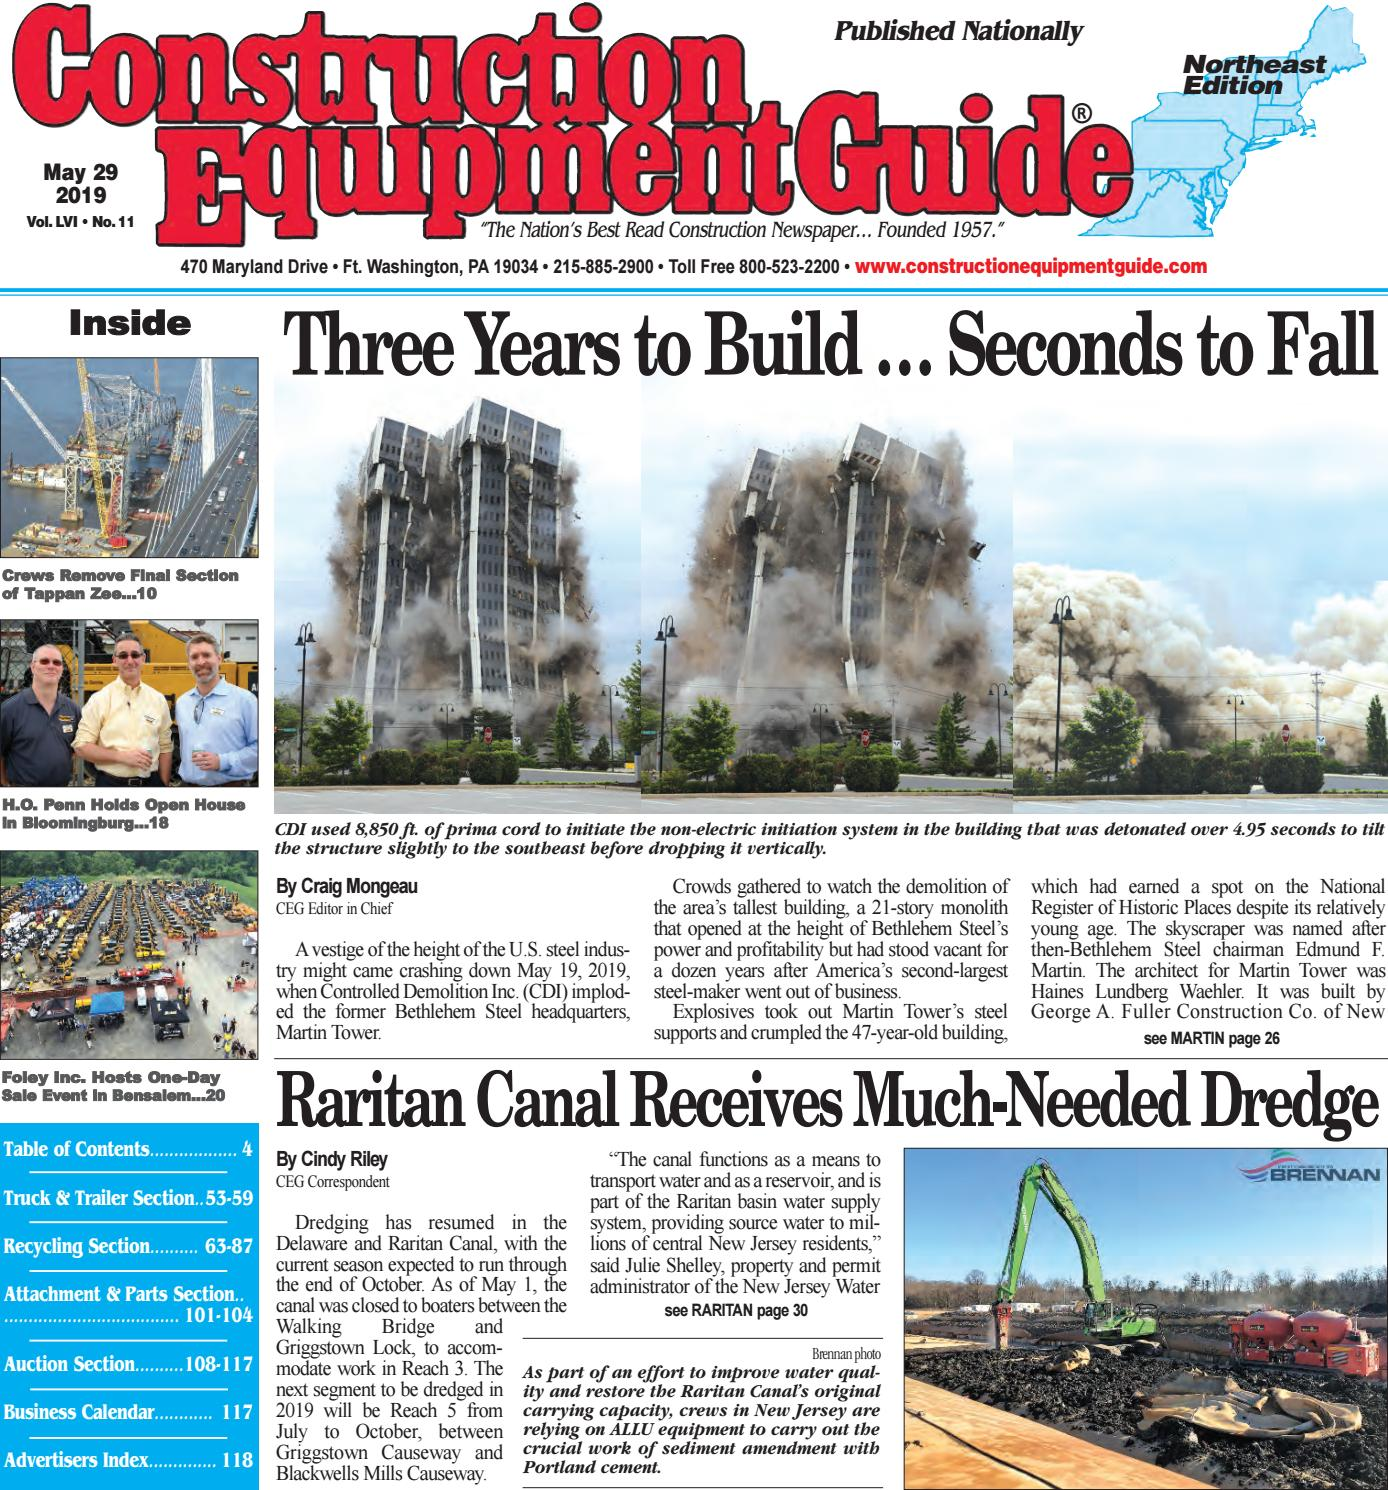 Northeast 11 May 28, 2019 by Construction Equipment Guide